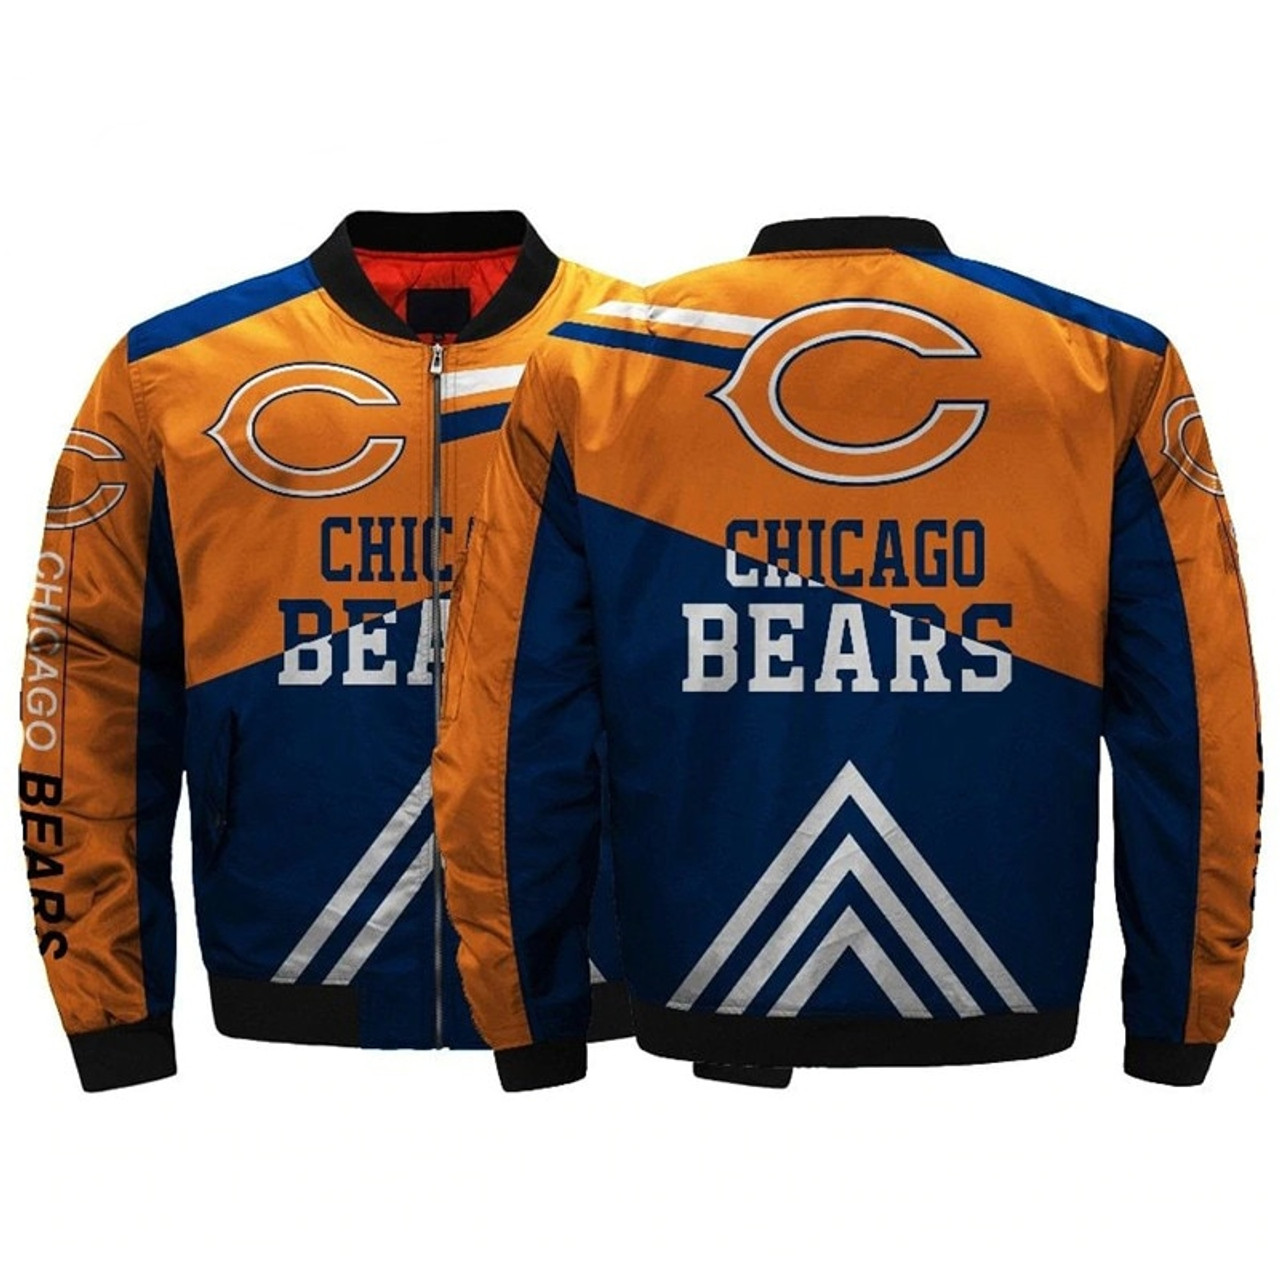 brand new 165d0 49b96 **(OFFICIALLY-LICENSED-N.F.L.CHICAGO-BEARS-JACKETS/CLASSIC-BEARS-TEAM-COLORS  & OFFICIAL-BEARS-LOGOS,BOMBER/MA-1 ...